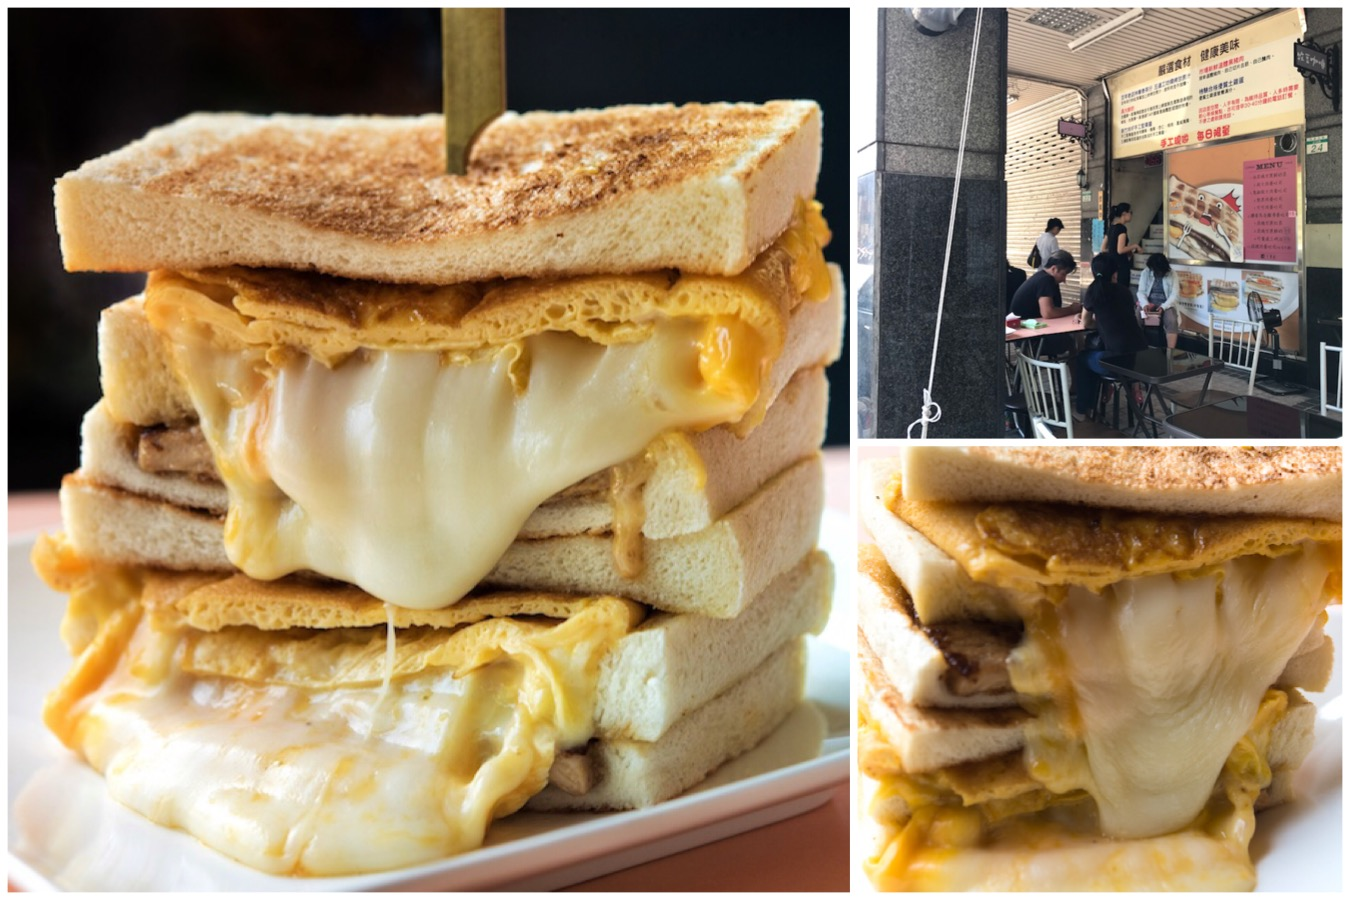 Comida 可蜜達炭烤吐司 - MUST-TRY Taiwanese Breakfast Toast In Taipei, With Cheese Overflowing